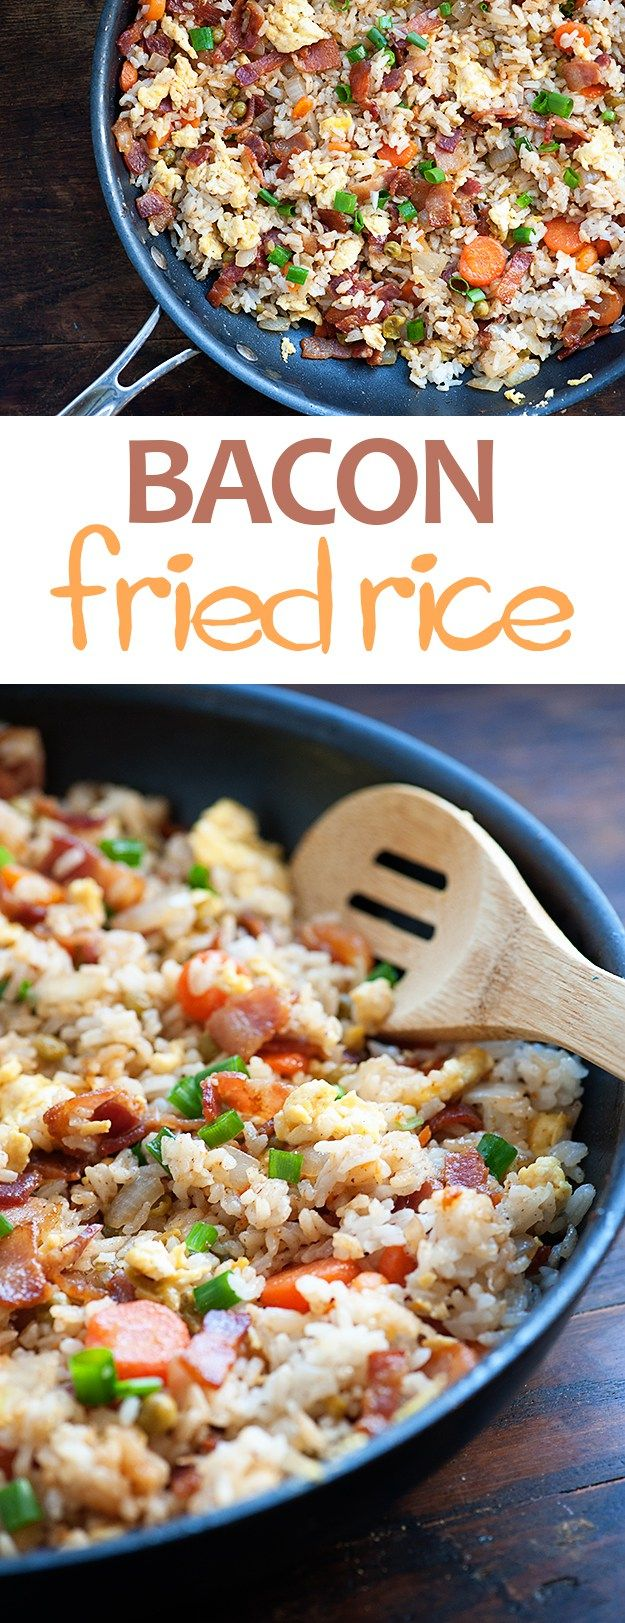 This homemade bacon fried rice is even better than take out!